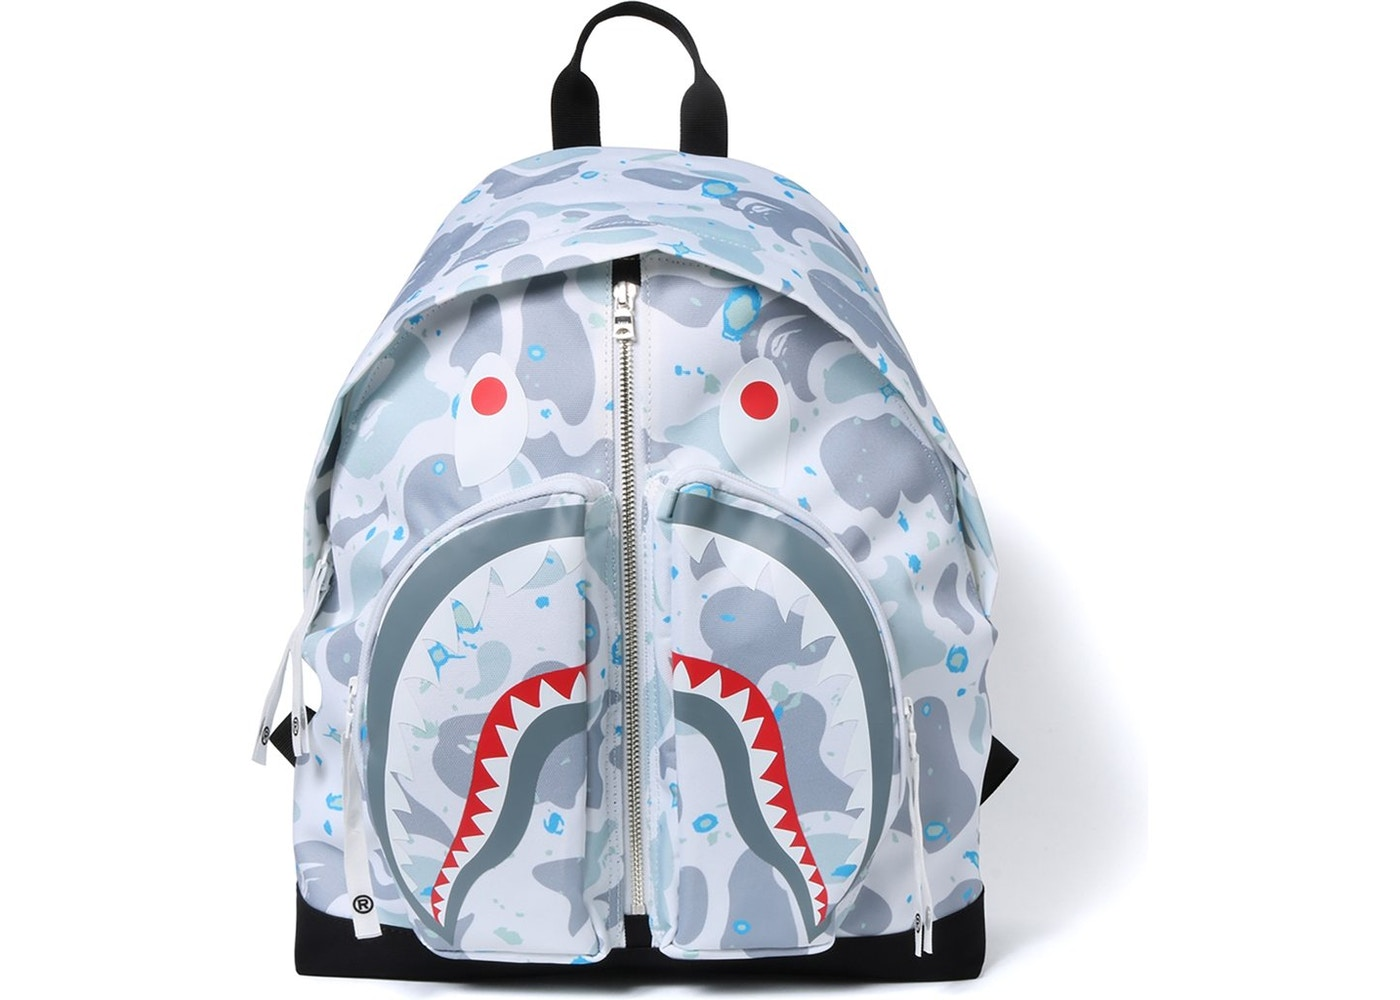 Bape Shark Backpack >> Bape Bags Buy Sell Streetwear